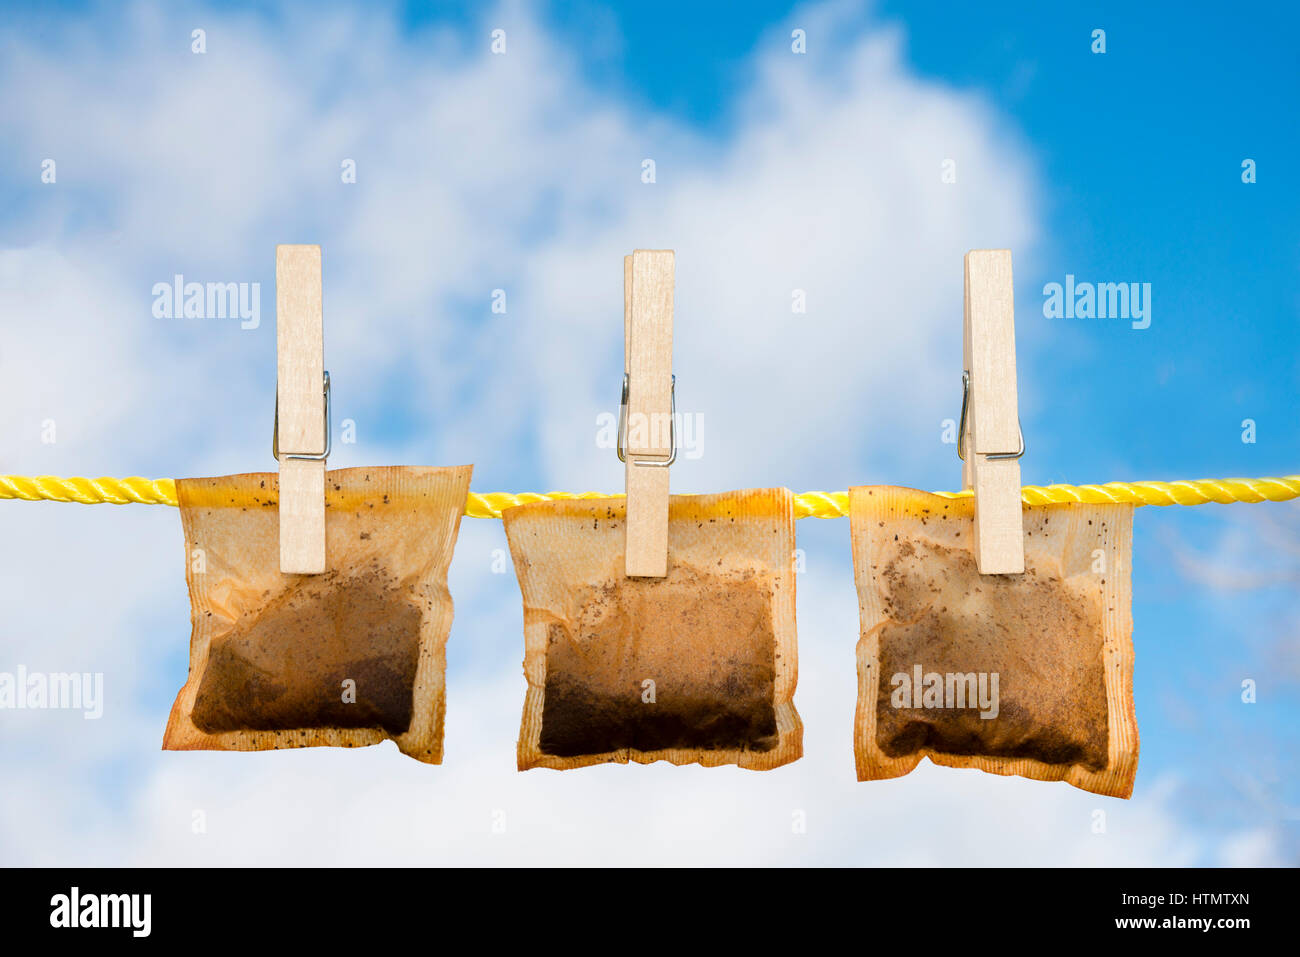 Used tea bags drying on a washing line. Money saving frugal lifestyle concept. - Stock Image